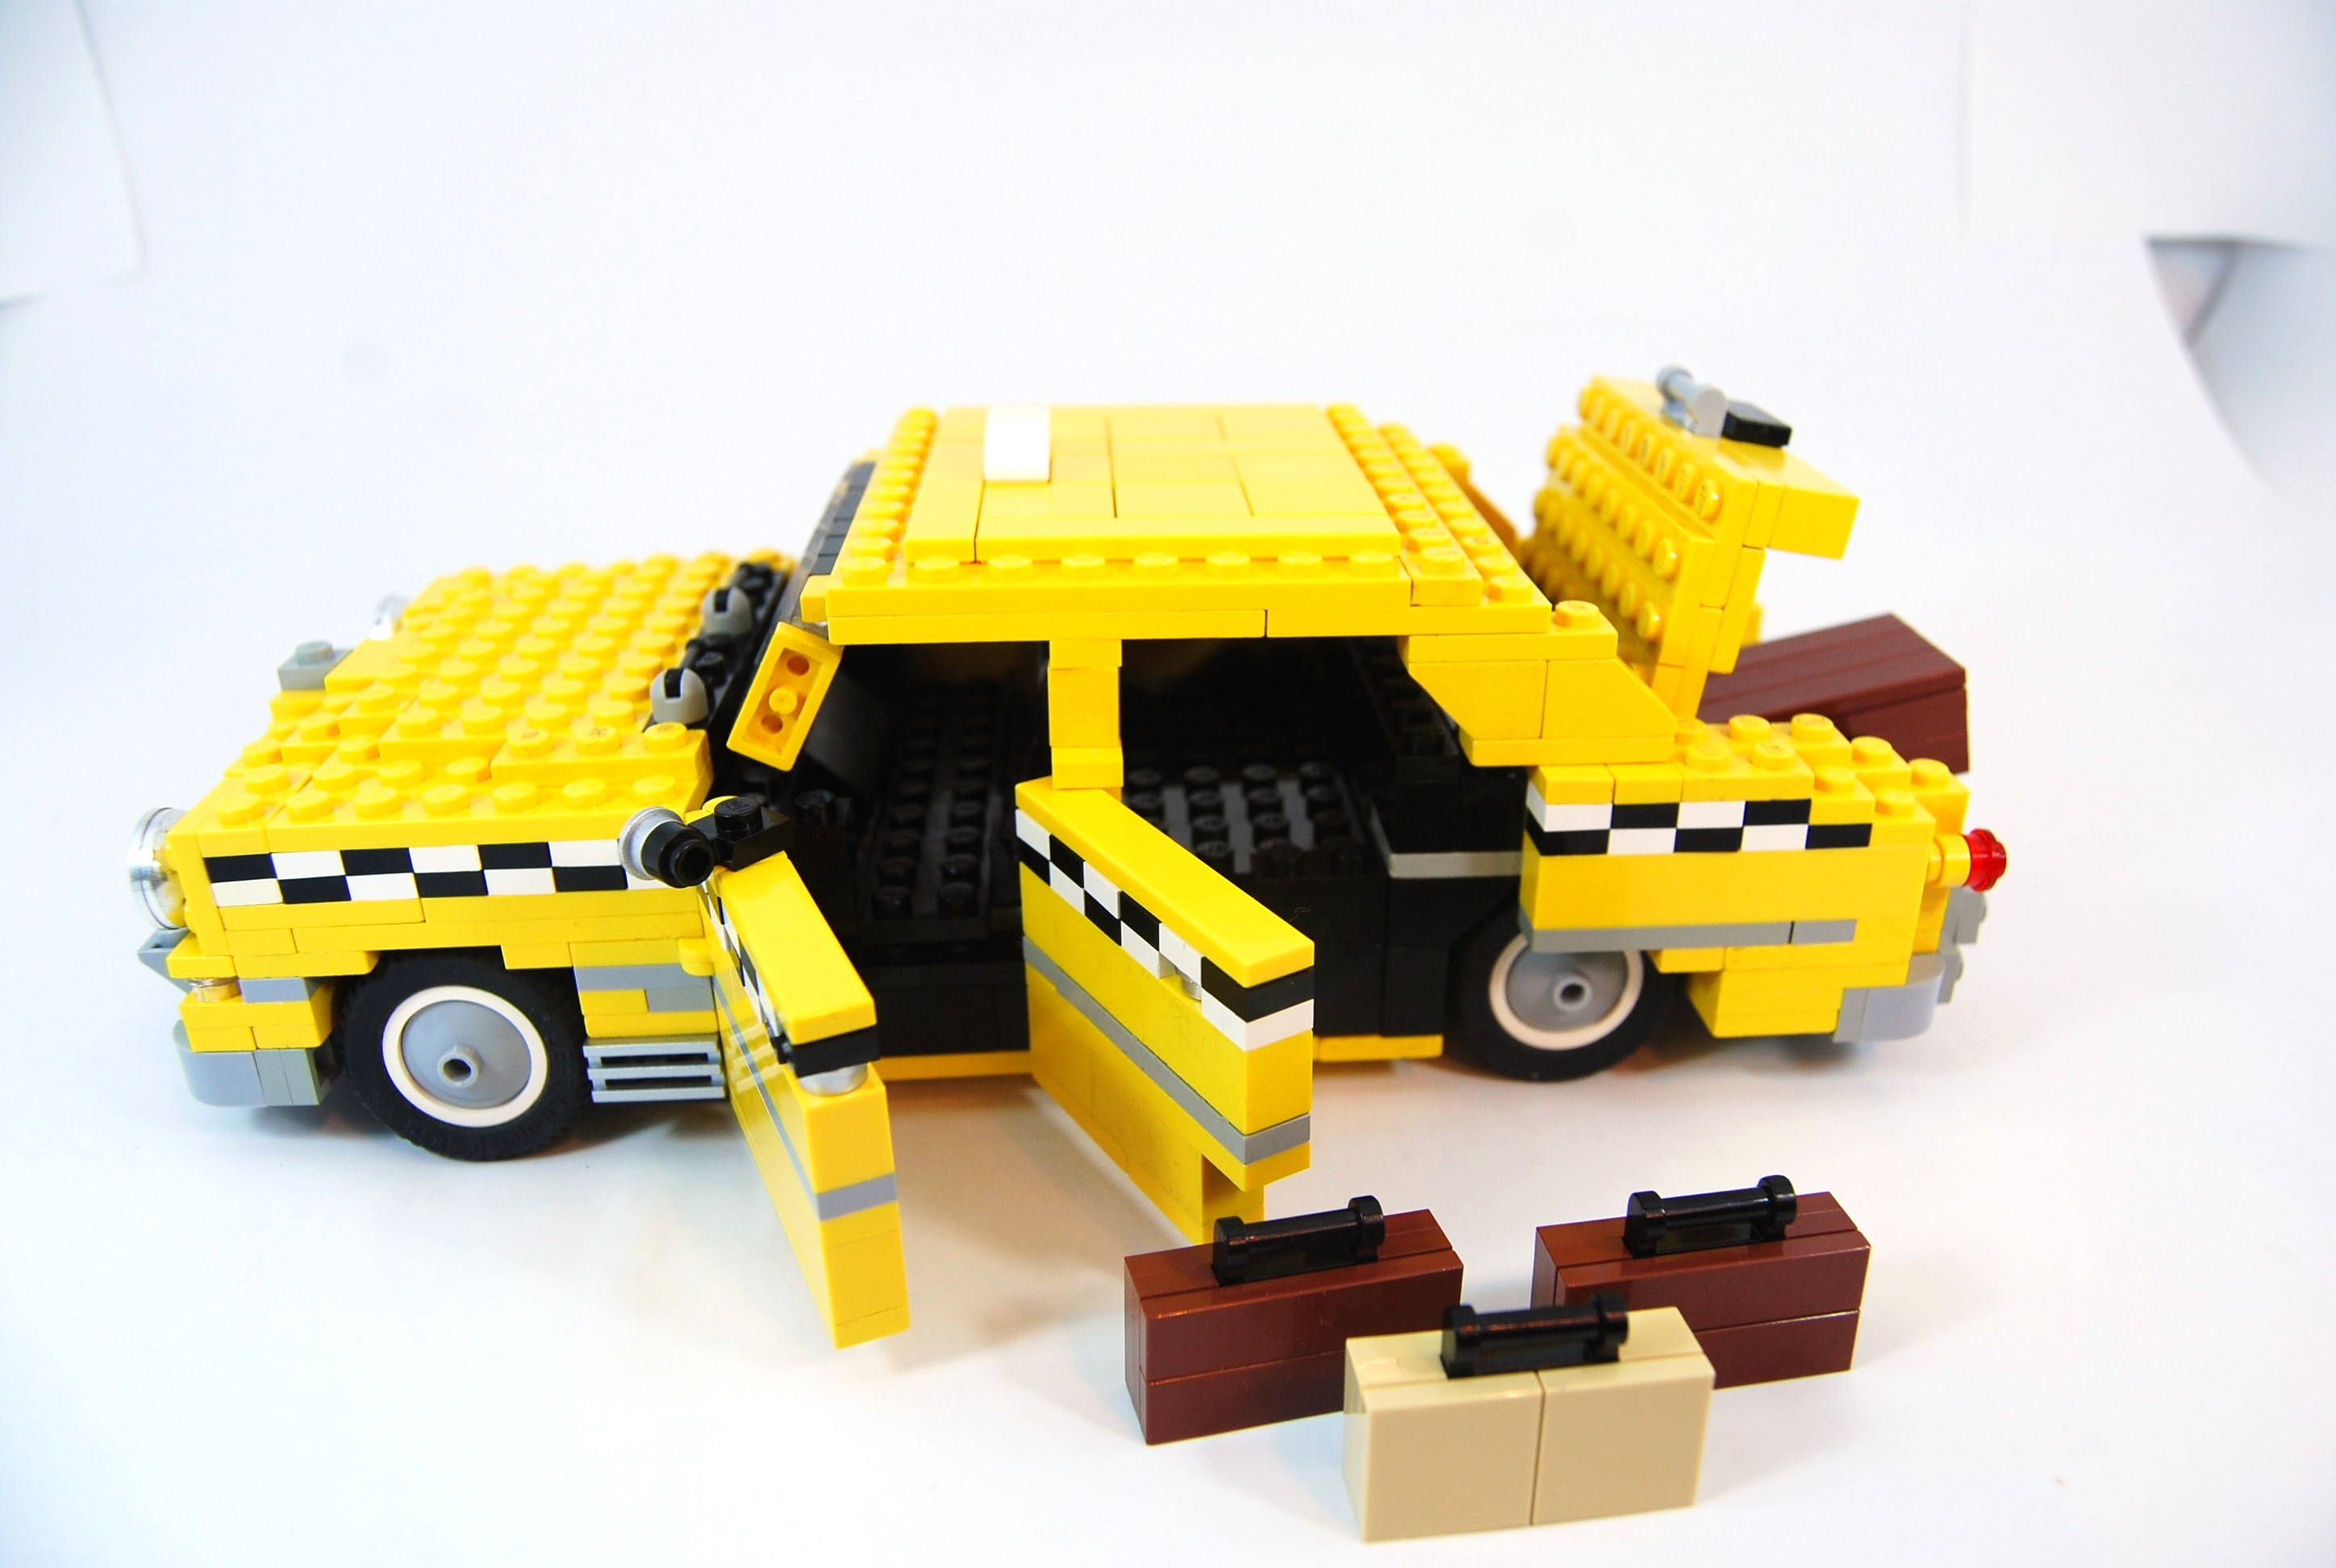 1949_ford_fordor_taxi_with_luggage_08.jpg